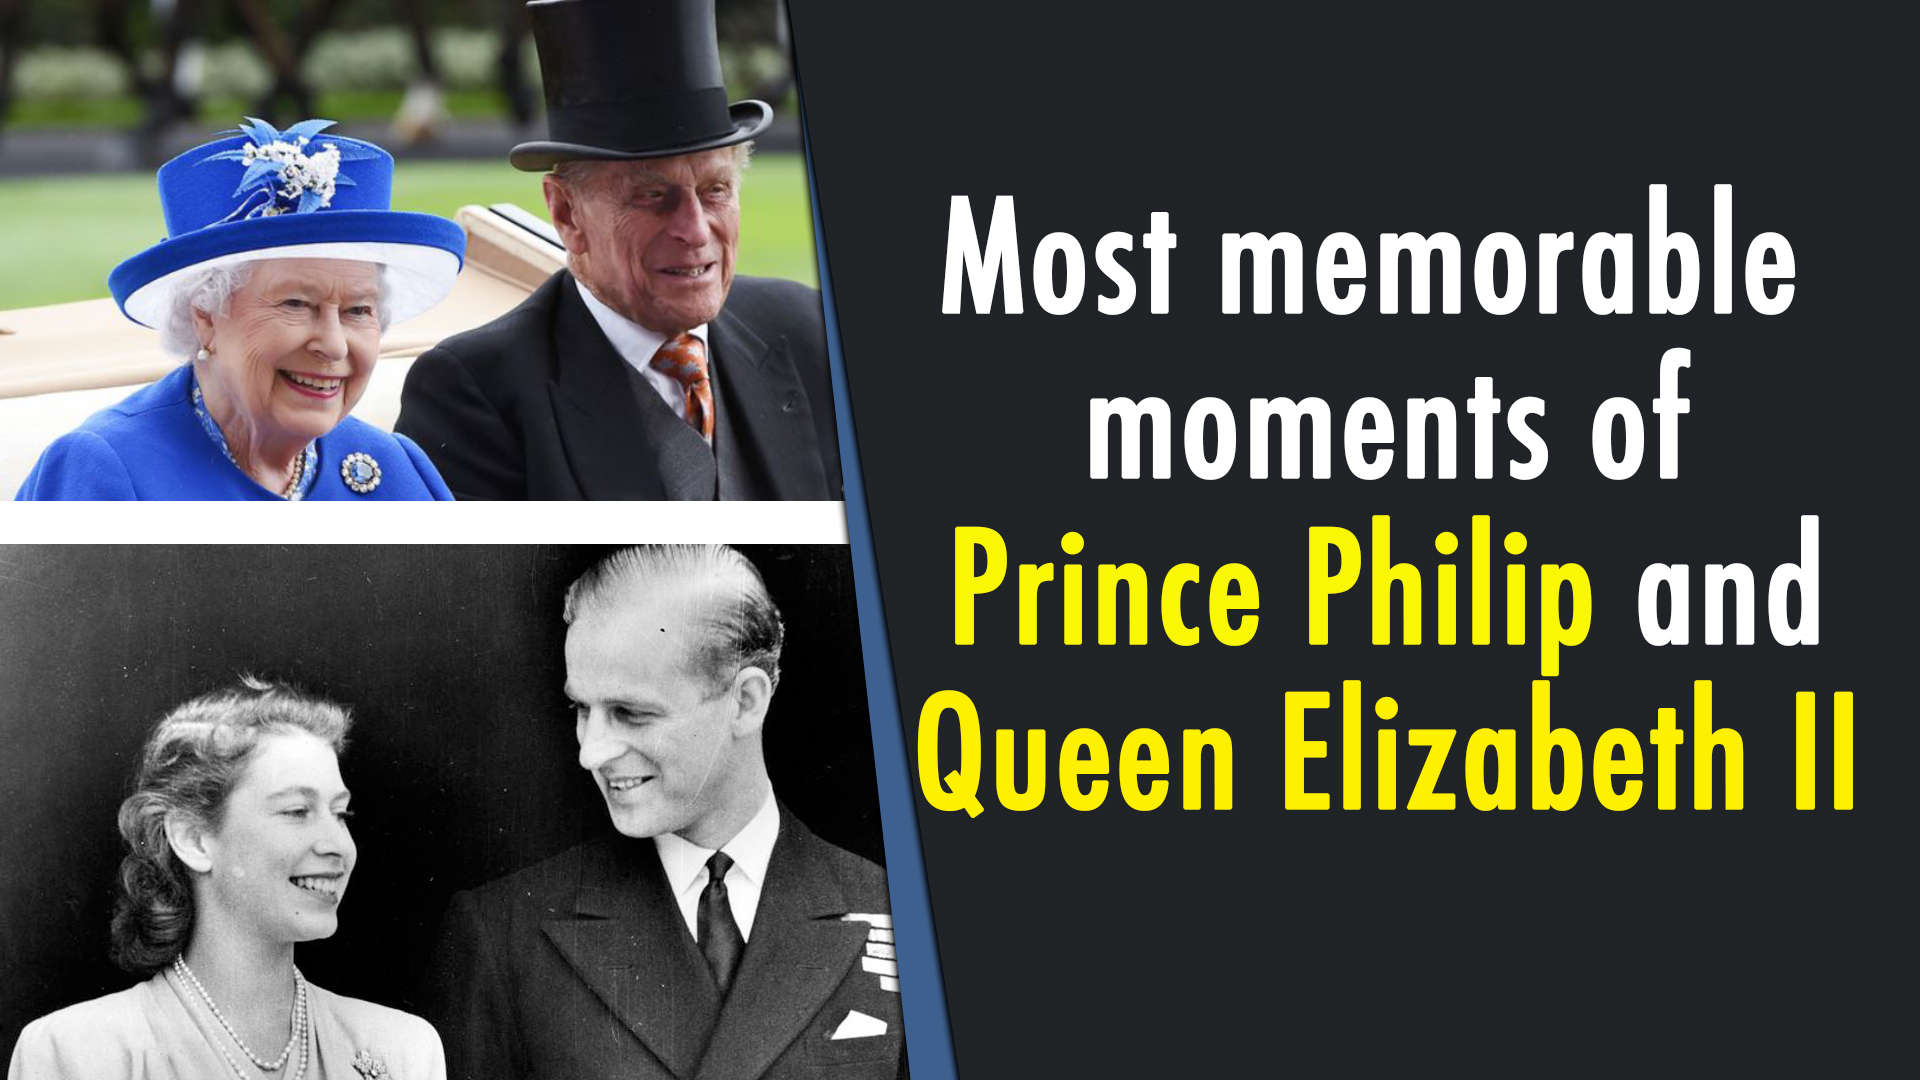 most-memorable-moments-of-prince-philip-and-queen-elizabeth-ii